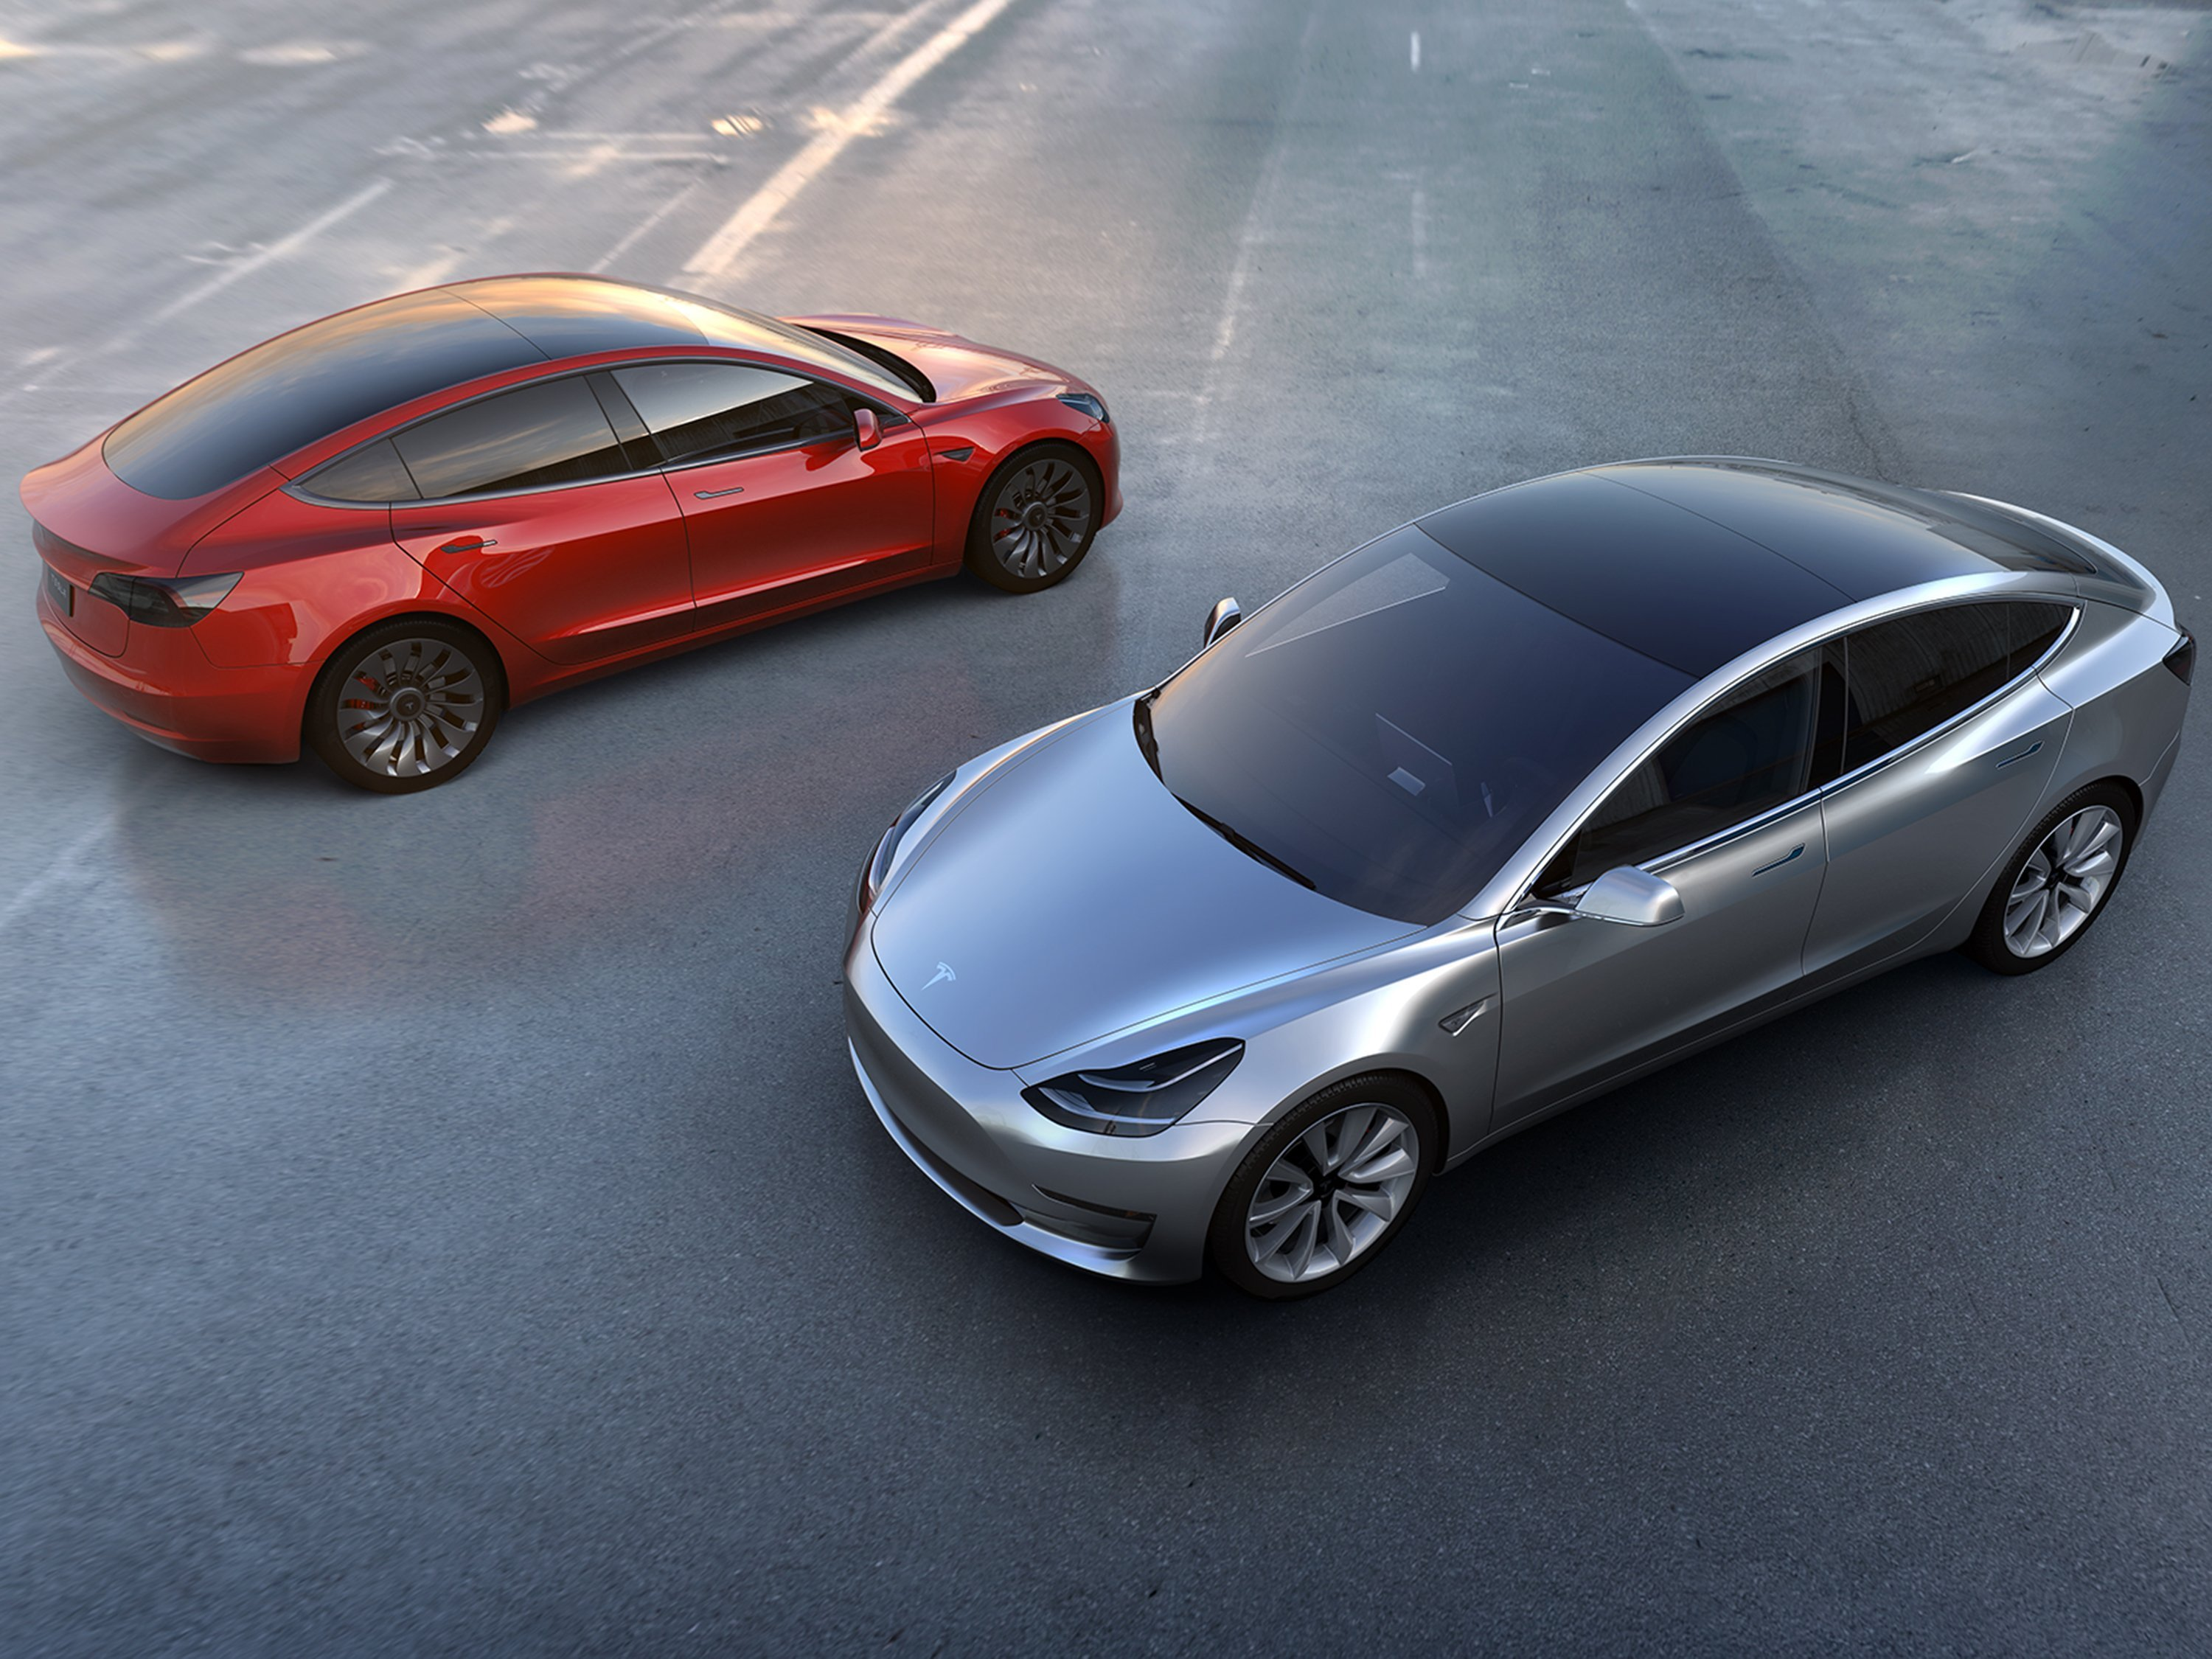 Tesla's cheaper electric vehicle the Model 3 struggling